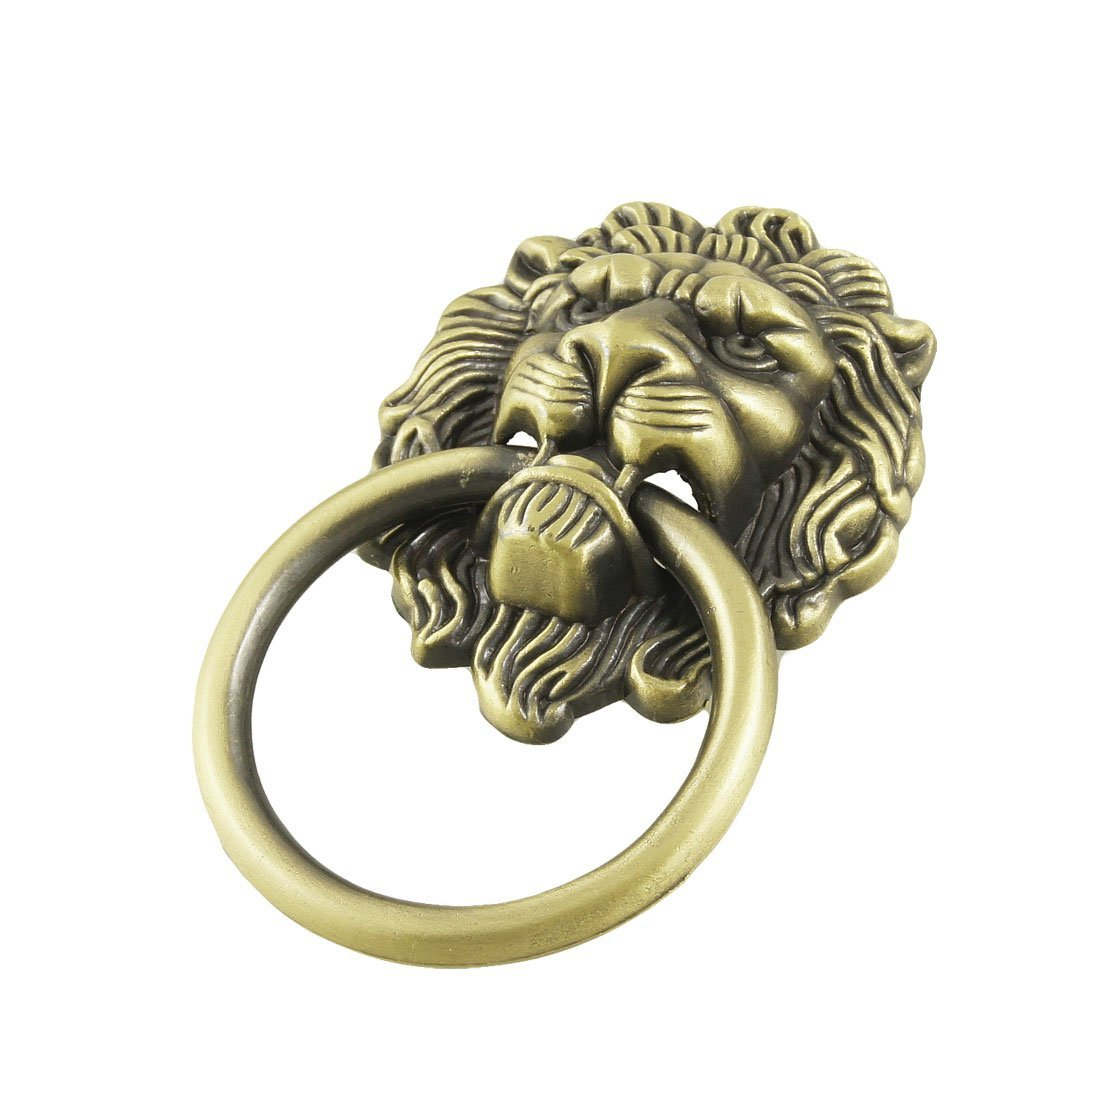 CSS  Antique Style Bronze Tone Lion Head Design Drawer Ring Pull Handle Knob ada instruments ruber x32